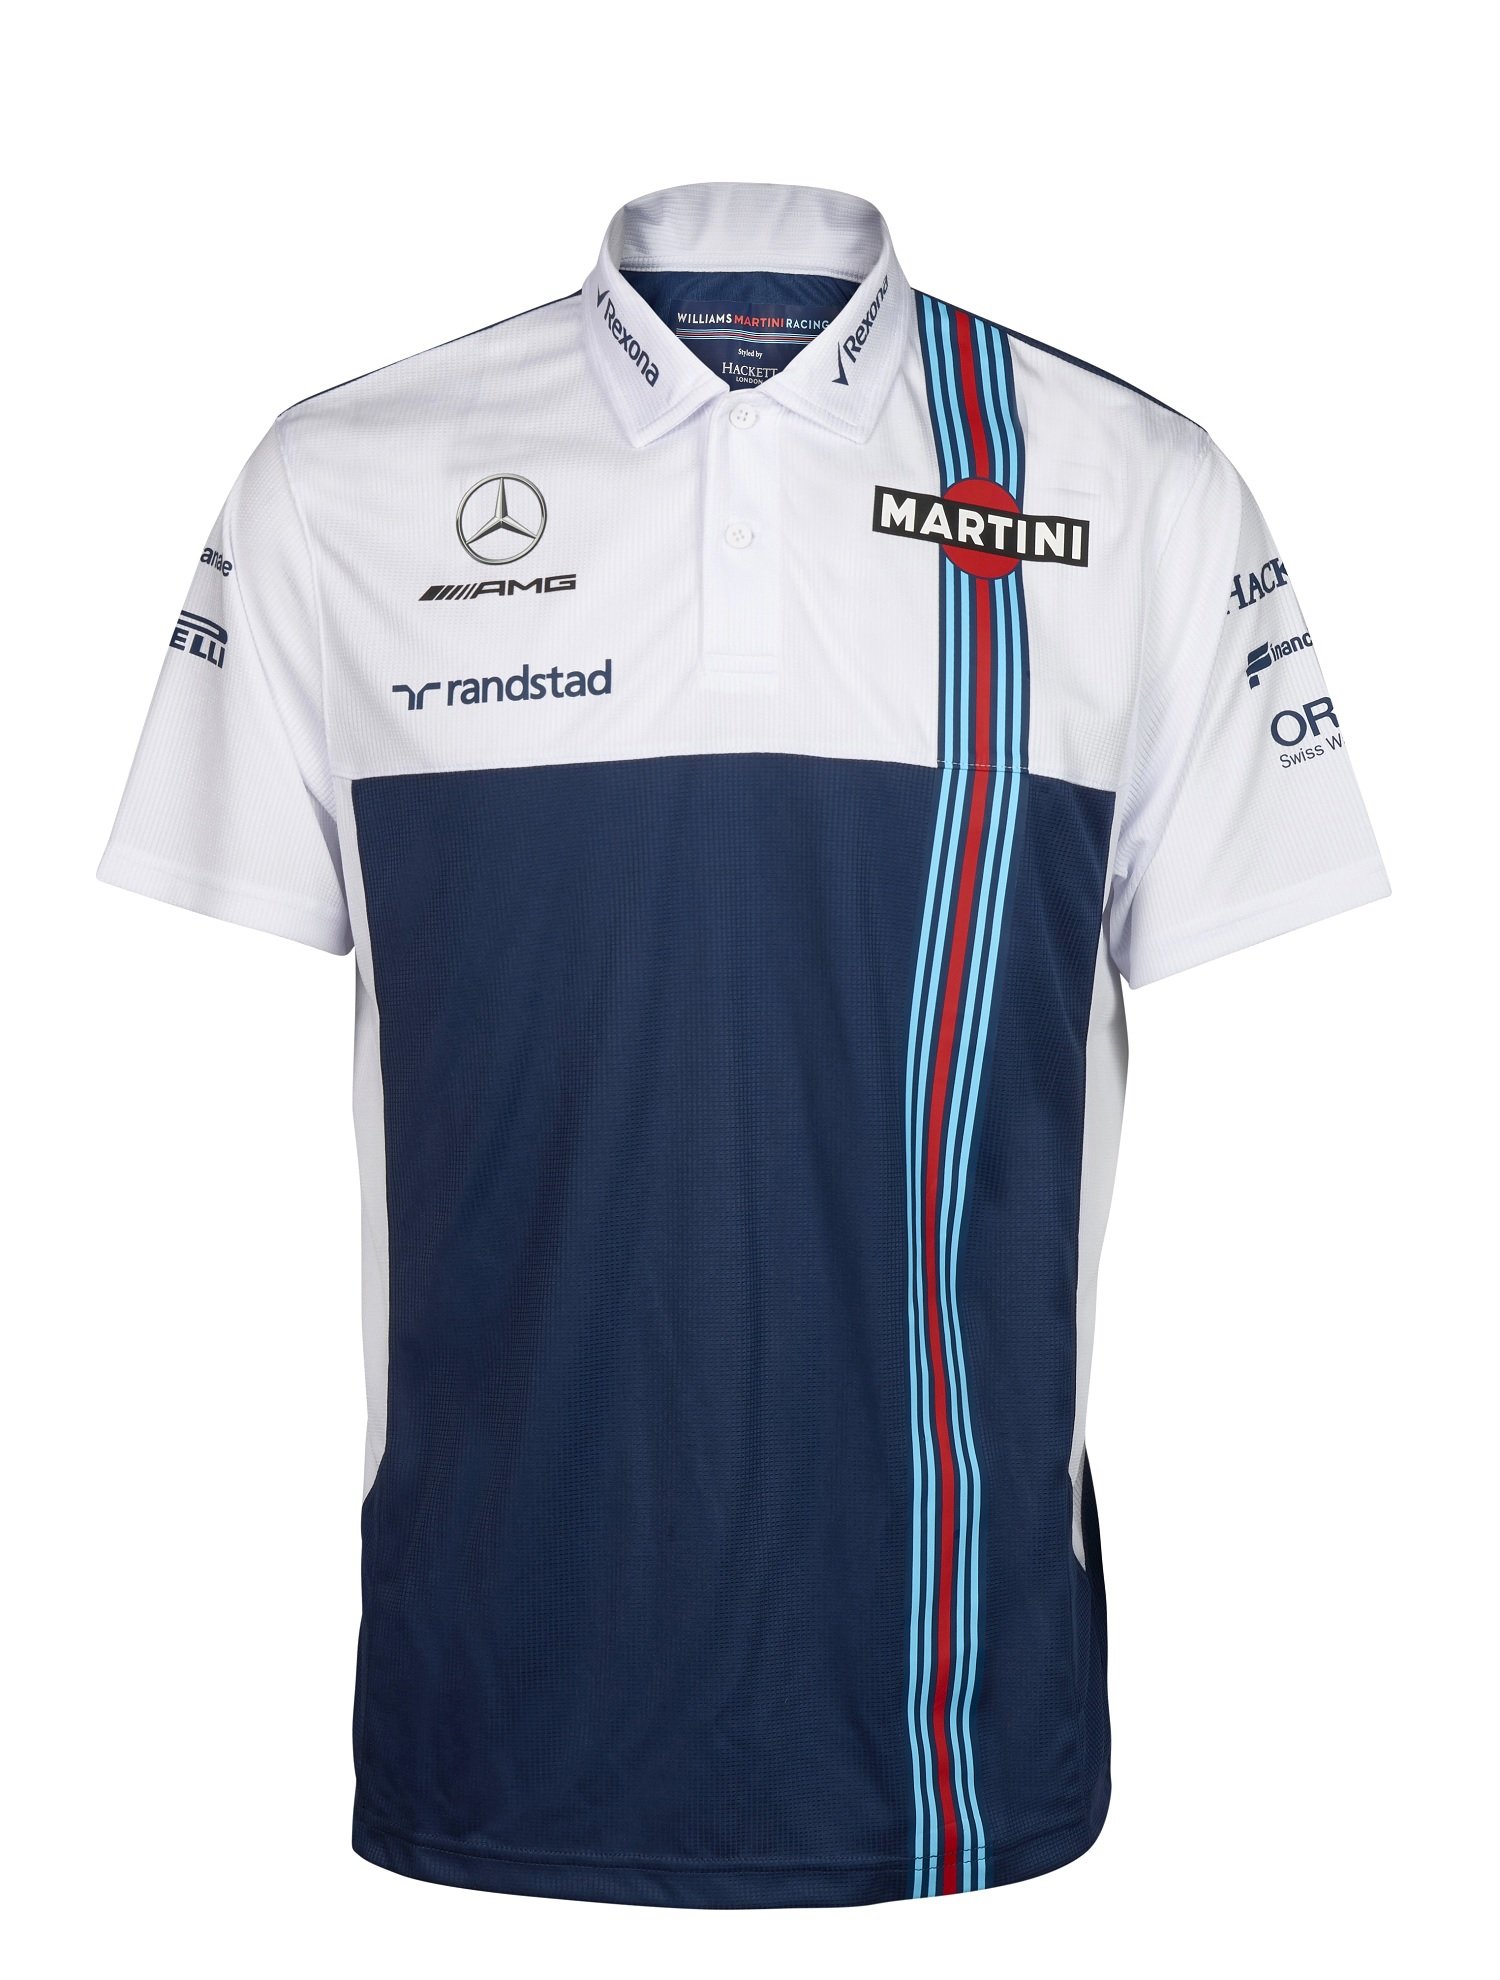 POLO Mens Williams Martini F1 Formula One 1 Mercedes Poloshirt PQ Nvy Wht US